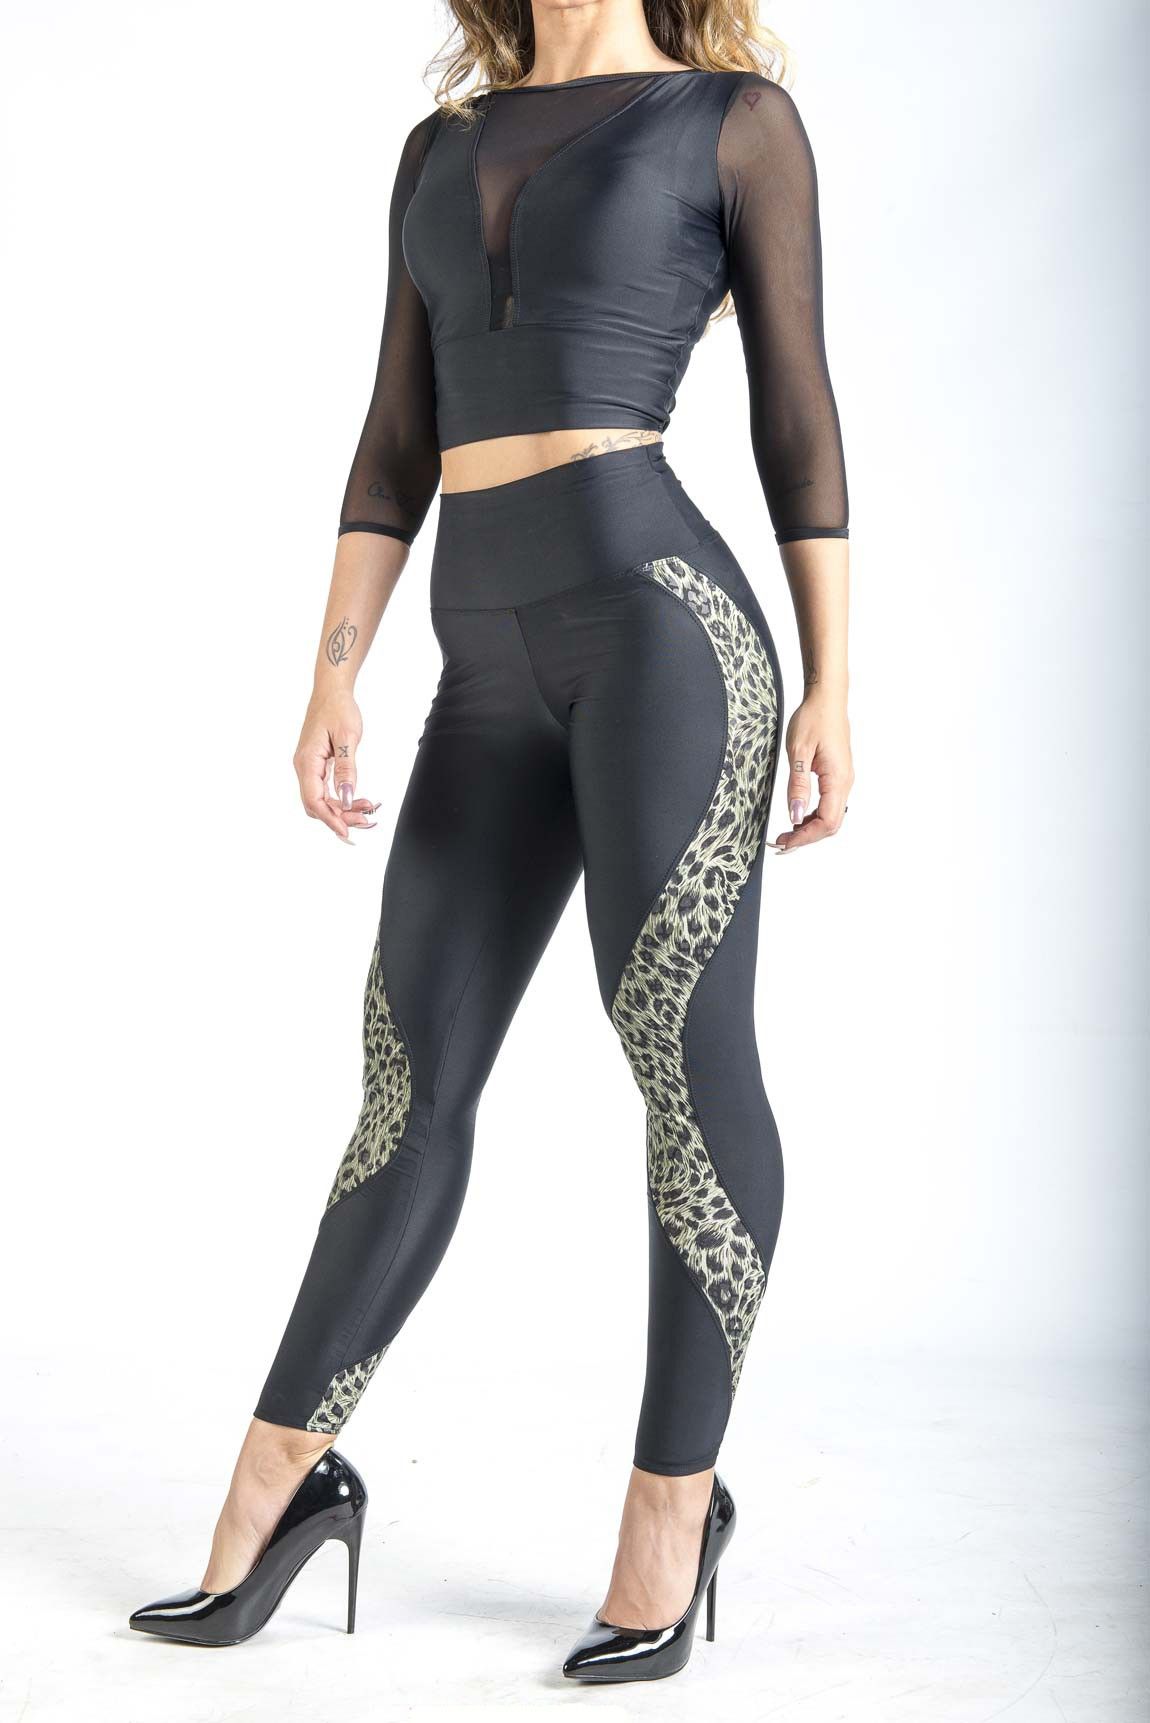 order dirt cheap cheaper Legging lycra bachata Amazon special design for dance